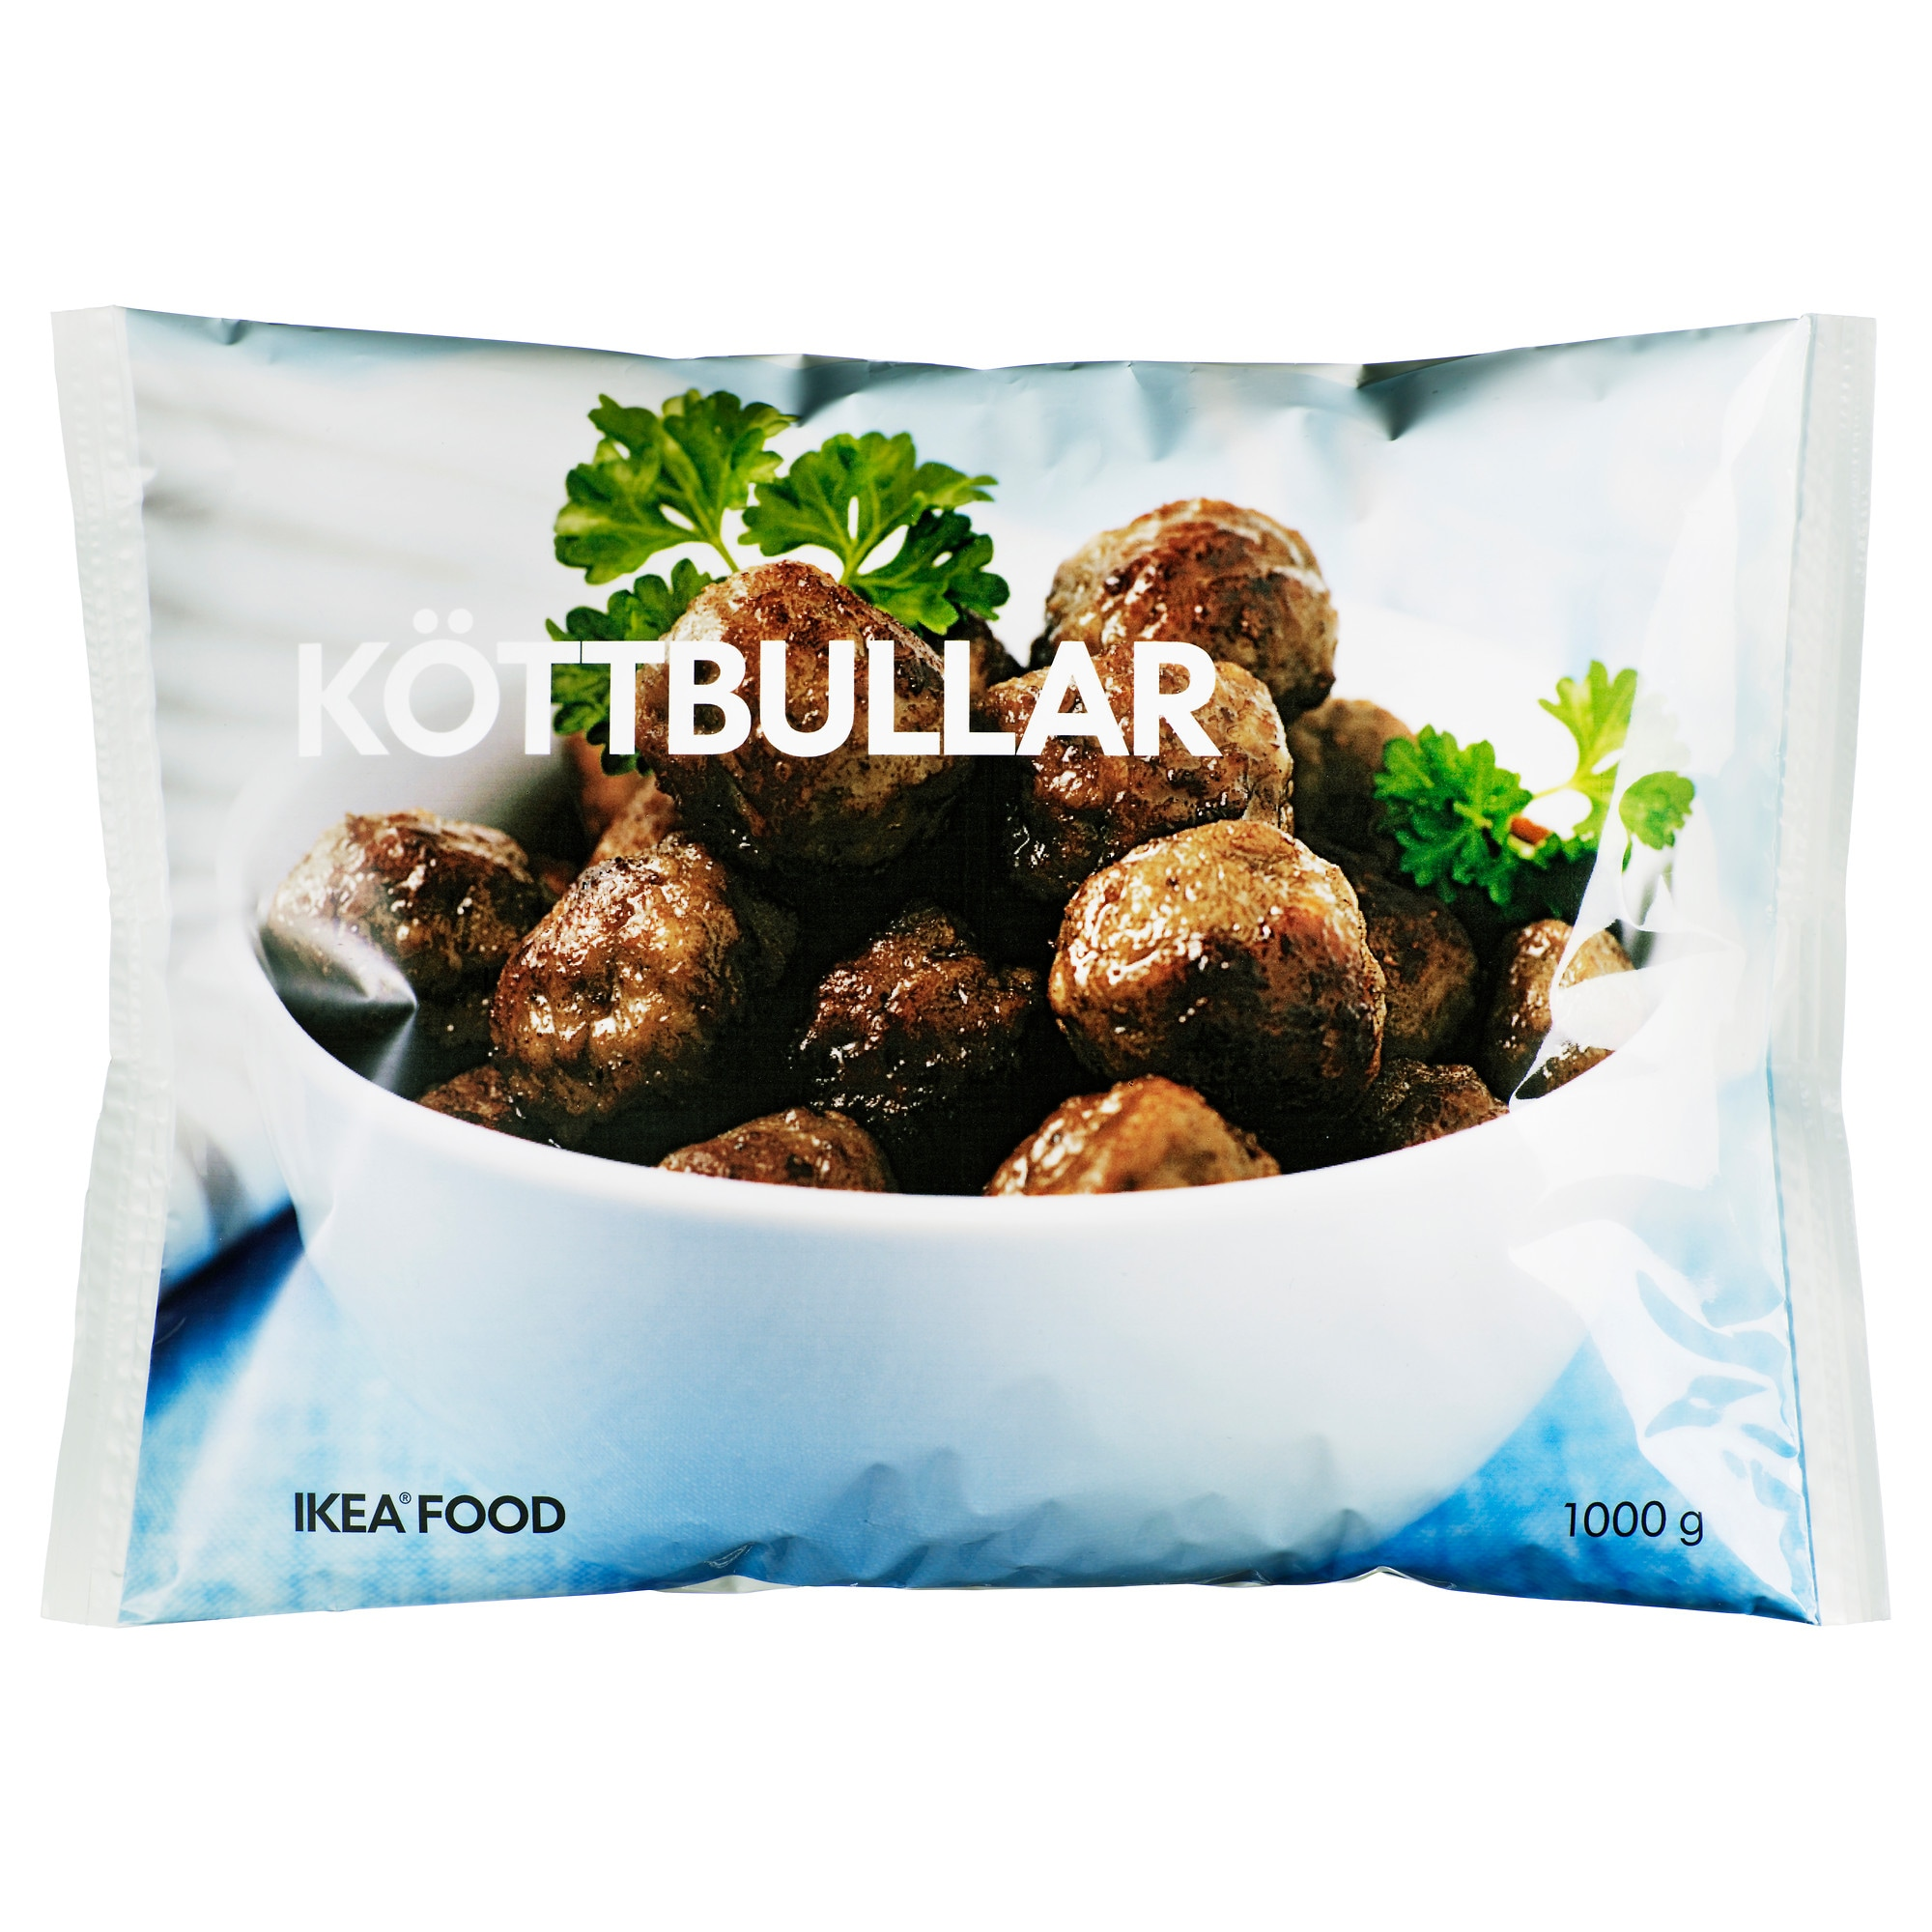 """These Vegan Swedish Meatballs are rich and """"meaty"""", seriously comforting and covered in a creamy gravy! Swedish Meatballs (otherwise known as Ikea Meatballs) are little meatballs cooked in a rich, creamy gravy and served with mashed potatoes and tart-sweet ligonberry sauce. It's the best kind of comfort food: warming, hearty and satisfying."""